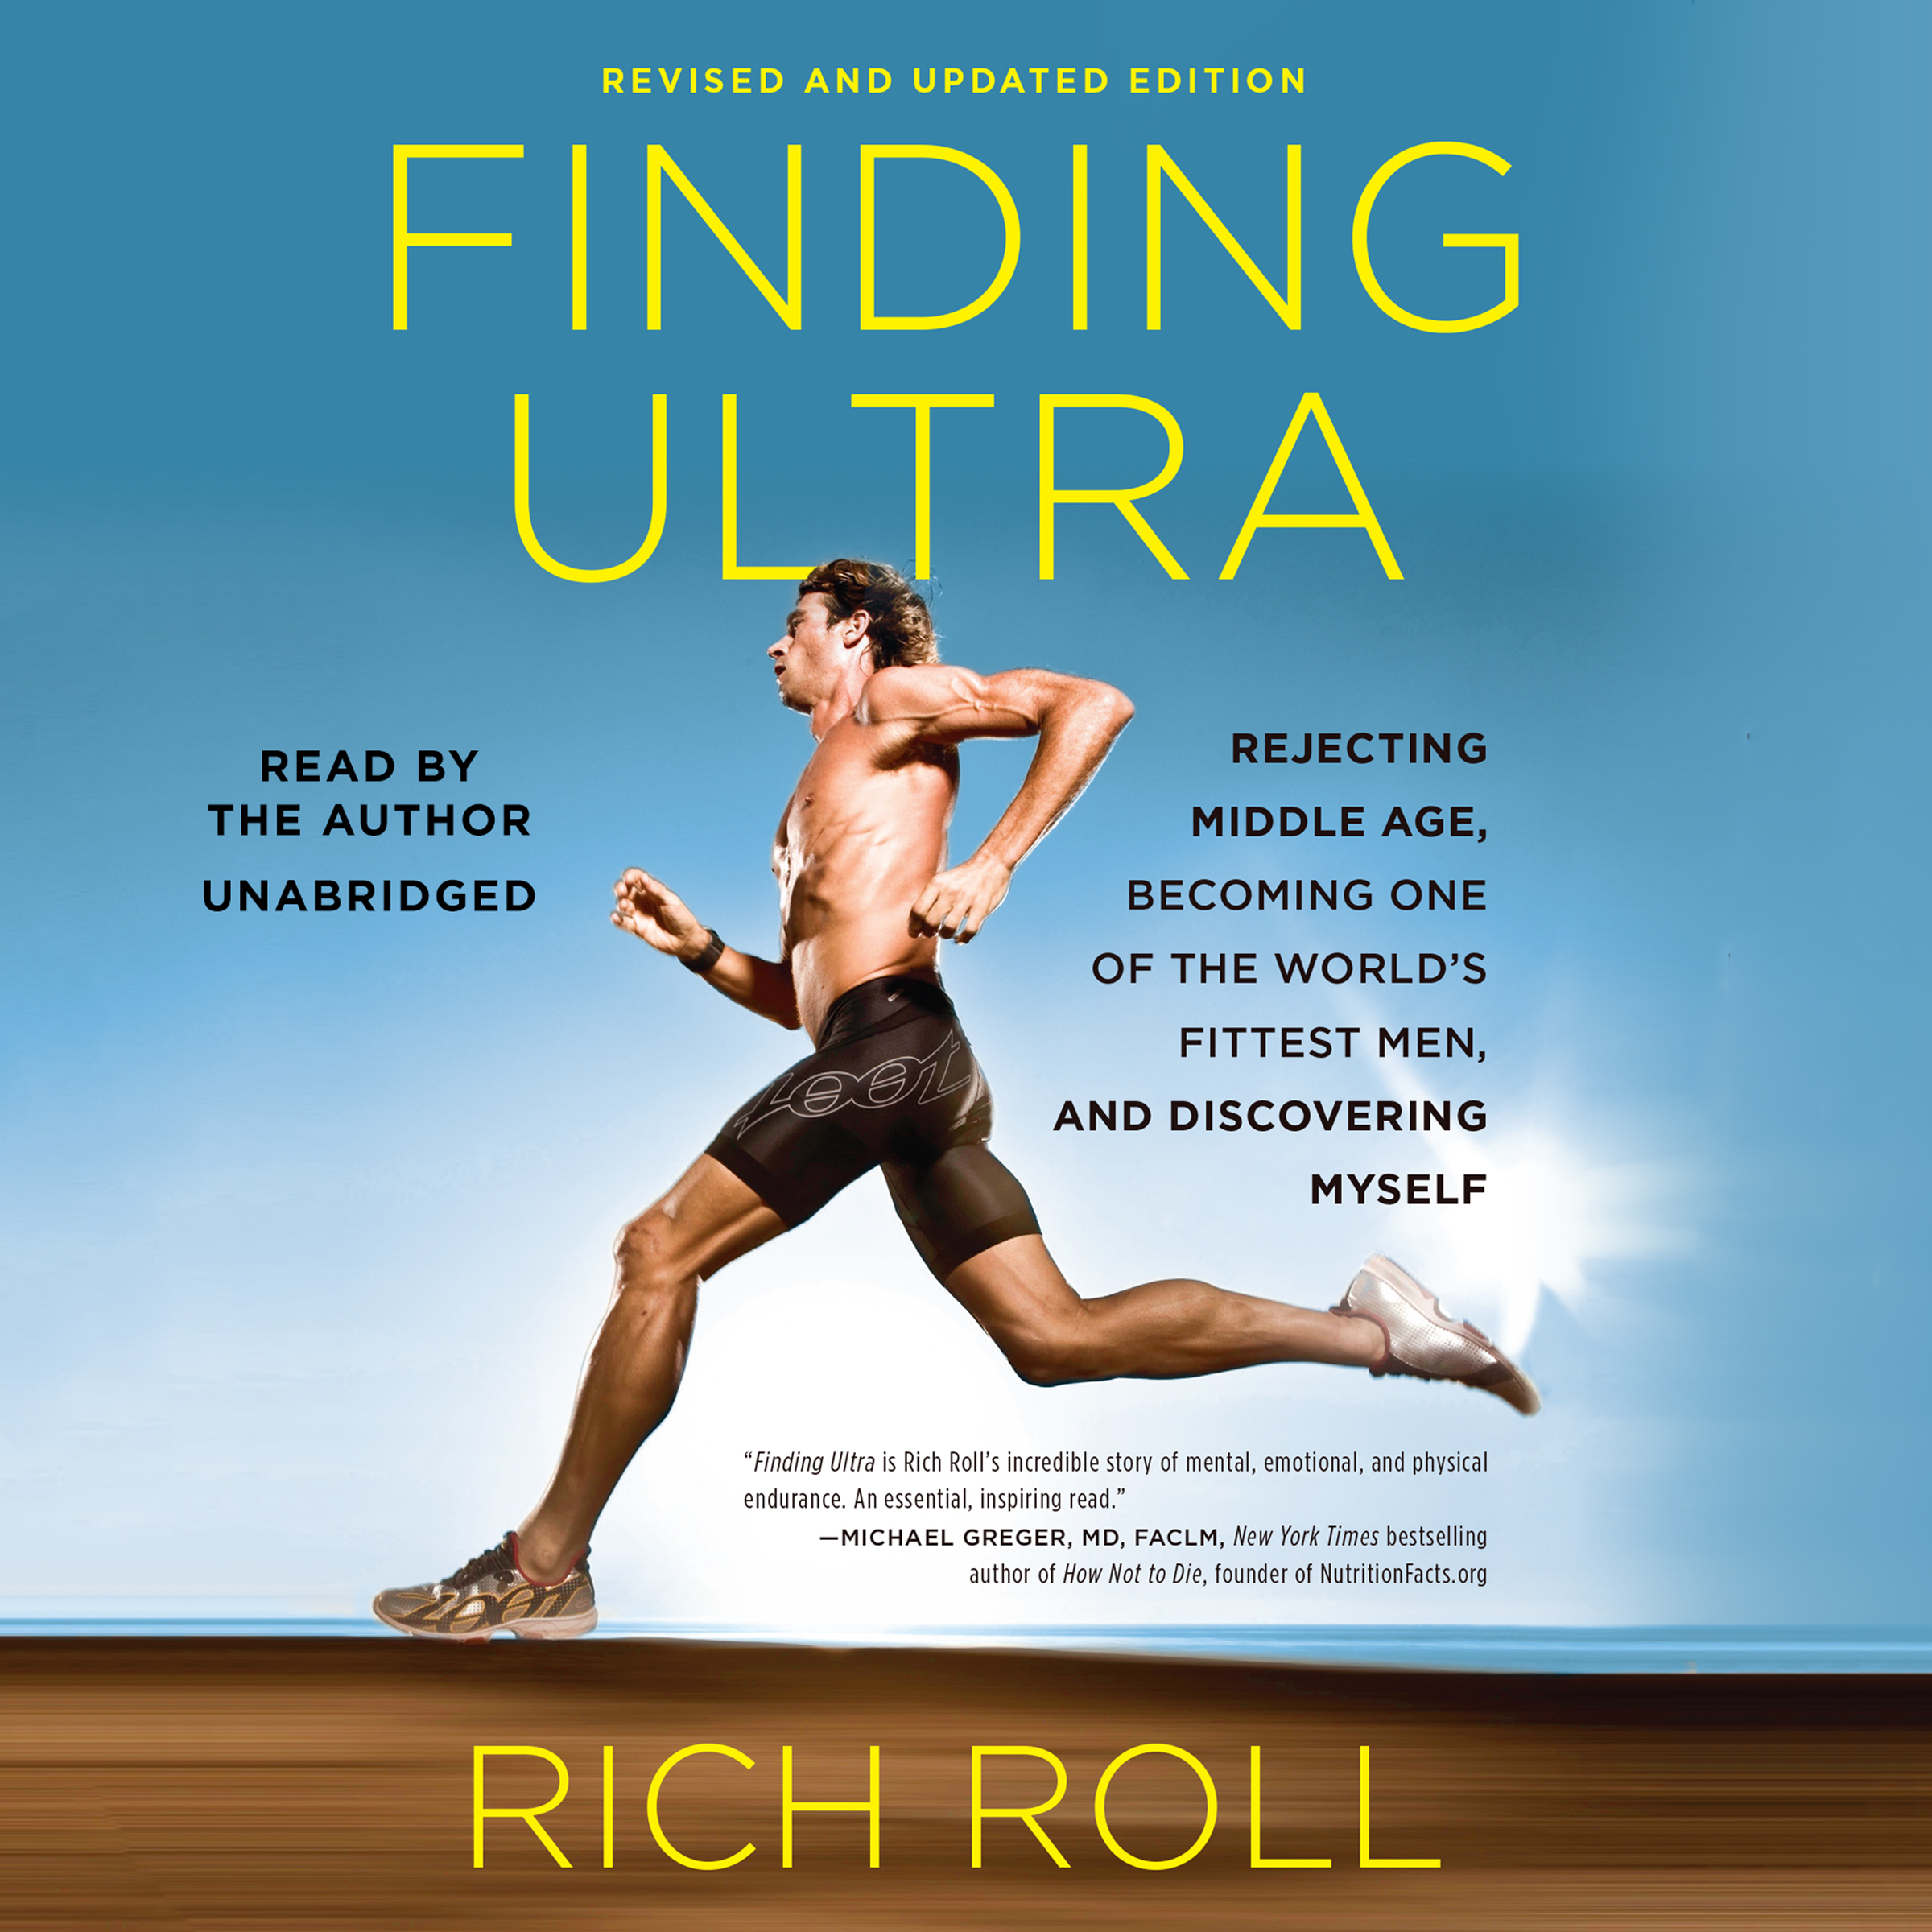 Printable Finding Ultra, Revised and Updated Edition: Rejecting Middle Age, Becoming One of the World's Fittest Men, and Discovering Myself Audiobook Cover Art